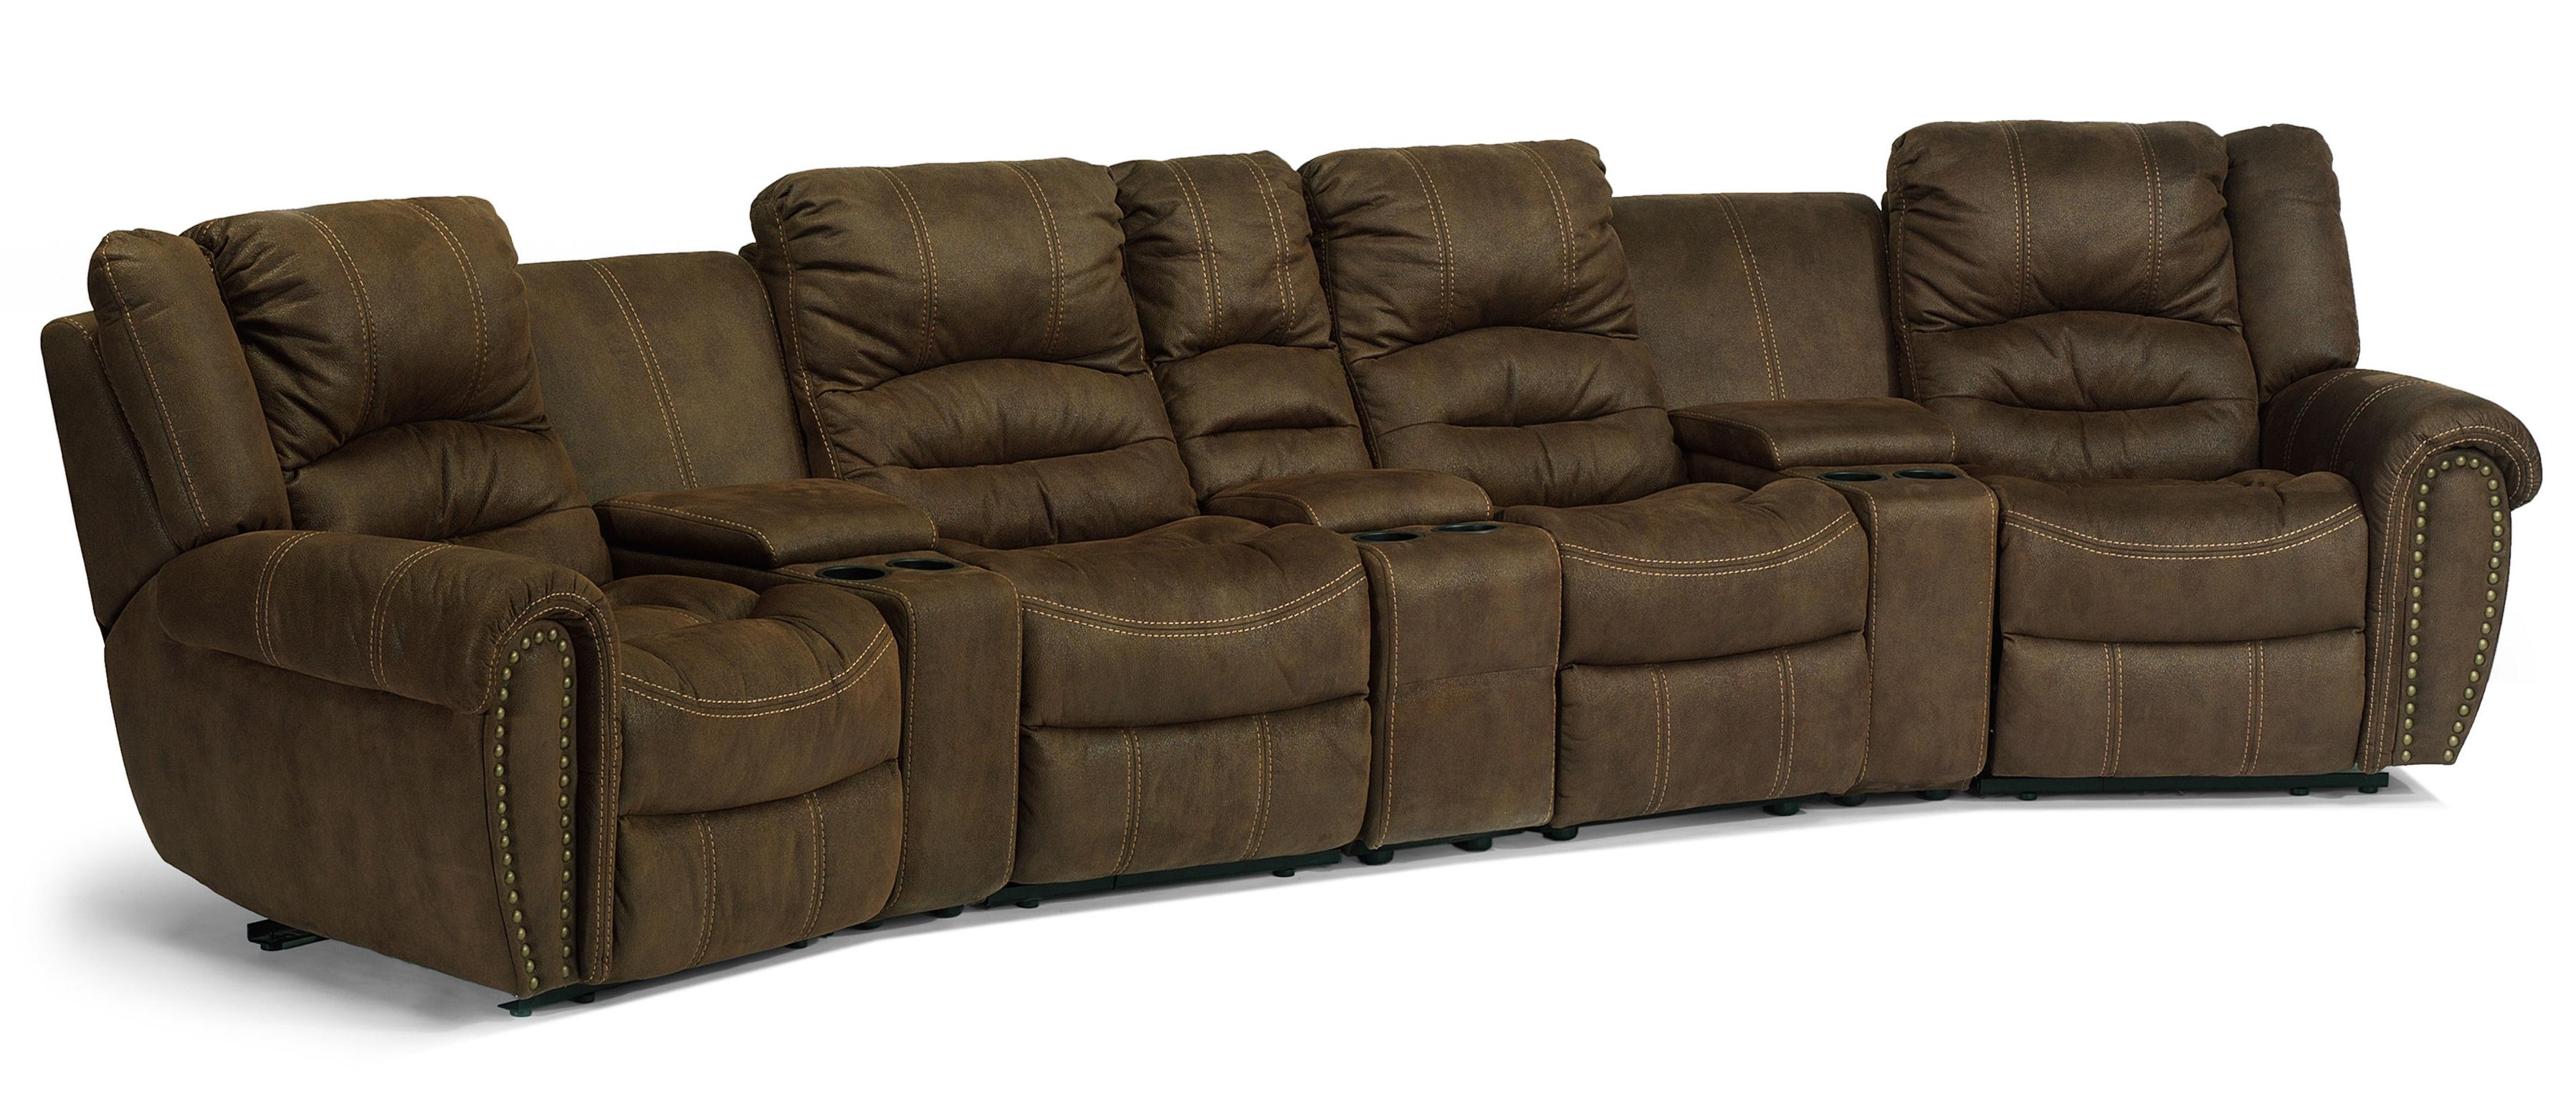 couches recliners two sofa l with elegant co thesofas sofas sectional